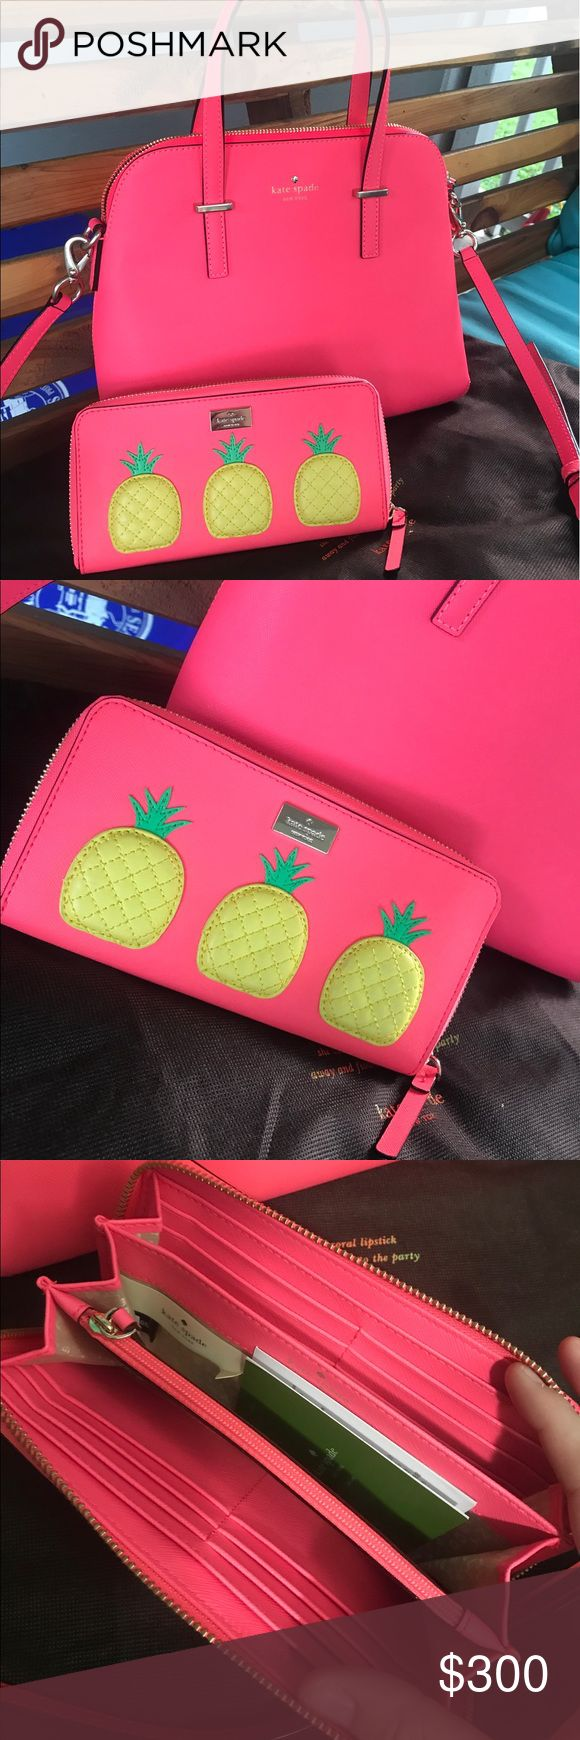 Kate Spade flo geranium maise and Wallet Kate Spade flo geranium maise handbag. Cross body strap and dust bag included. New without tags. And Neda pineapple wallet. Brand new with tags. Both flo geranium color. Bright neon pink! I will not separate. Rare color of the maise handbag! Thanks for looking kate spade Bags Shoulder Bags